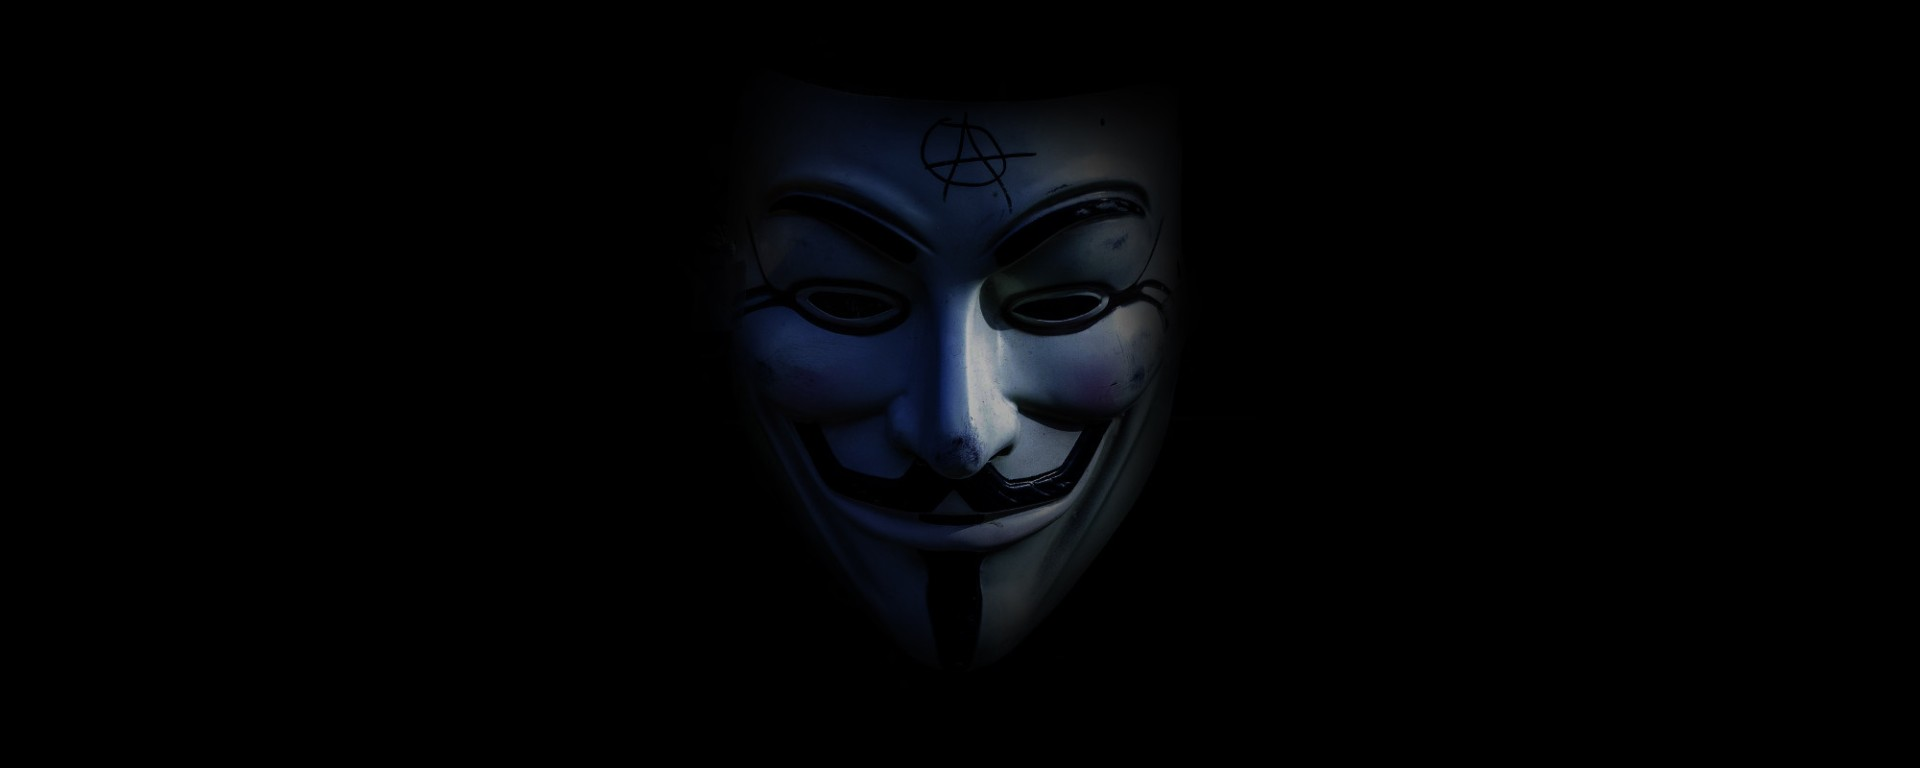 Conspiracy mask guy fawkes